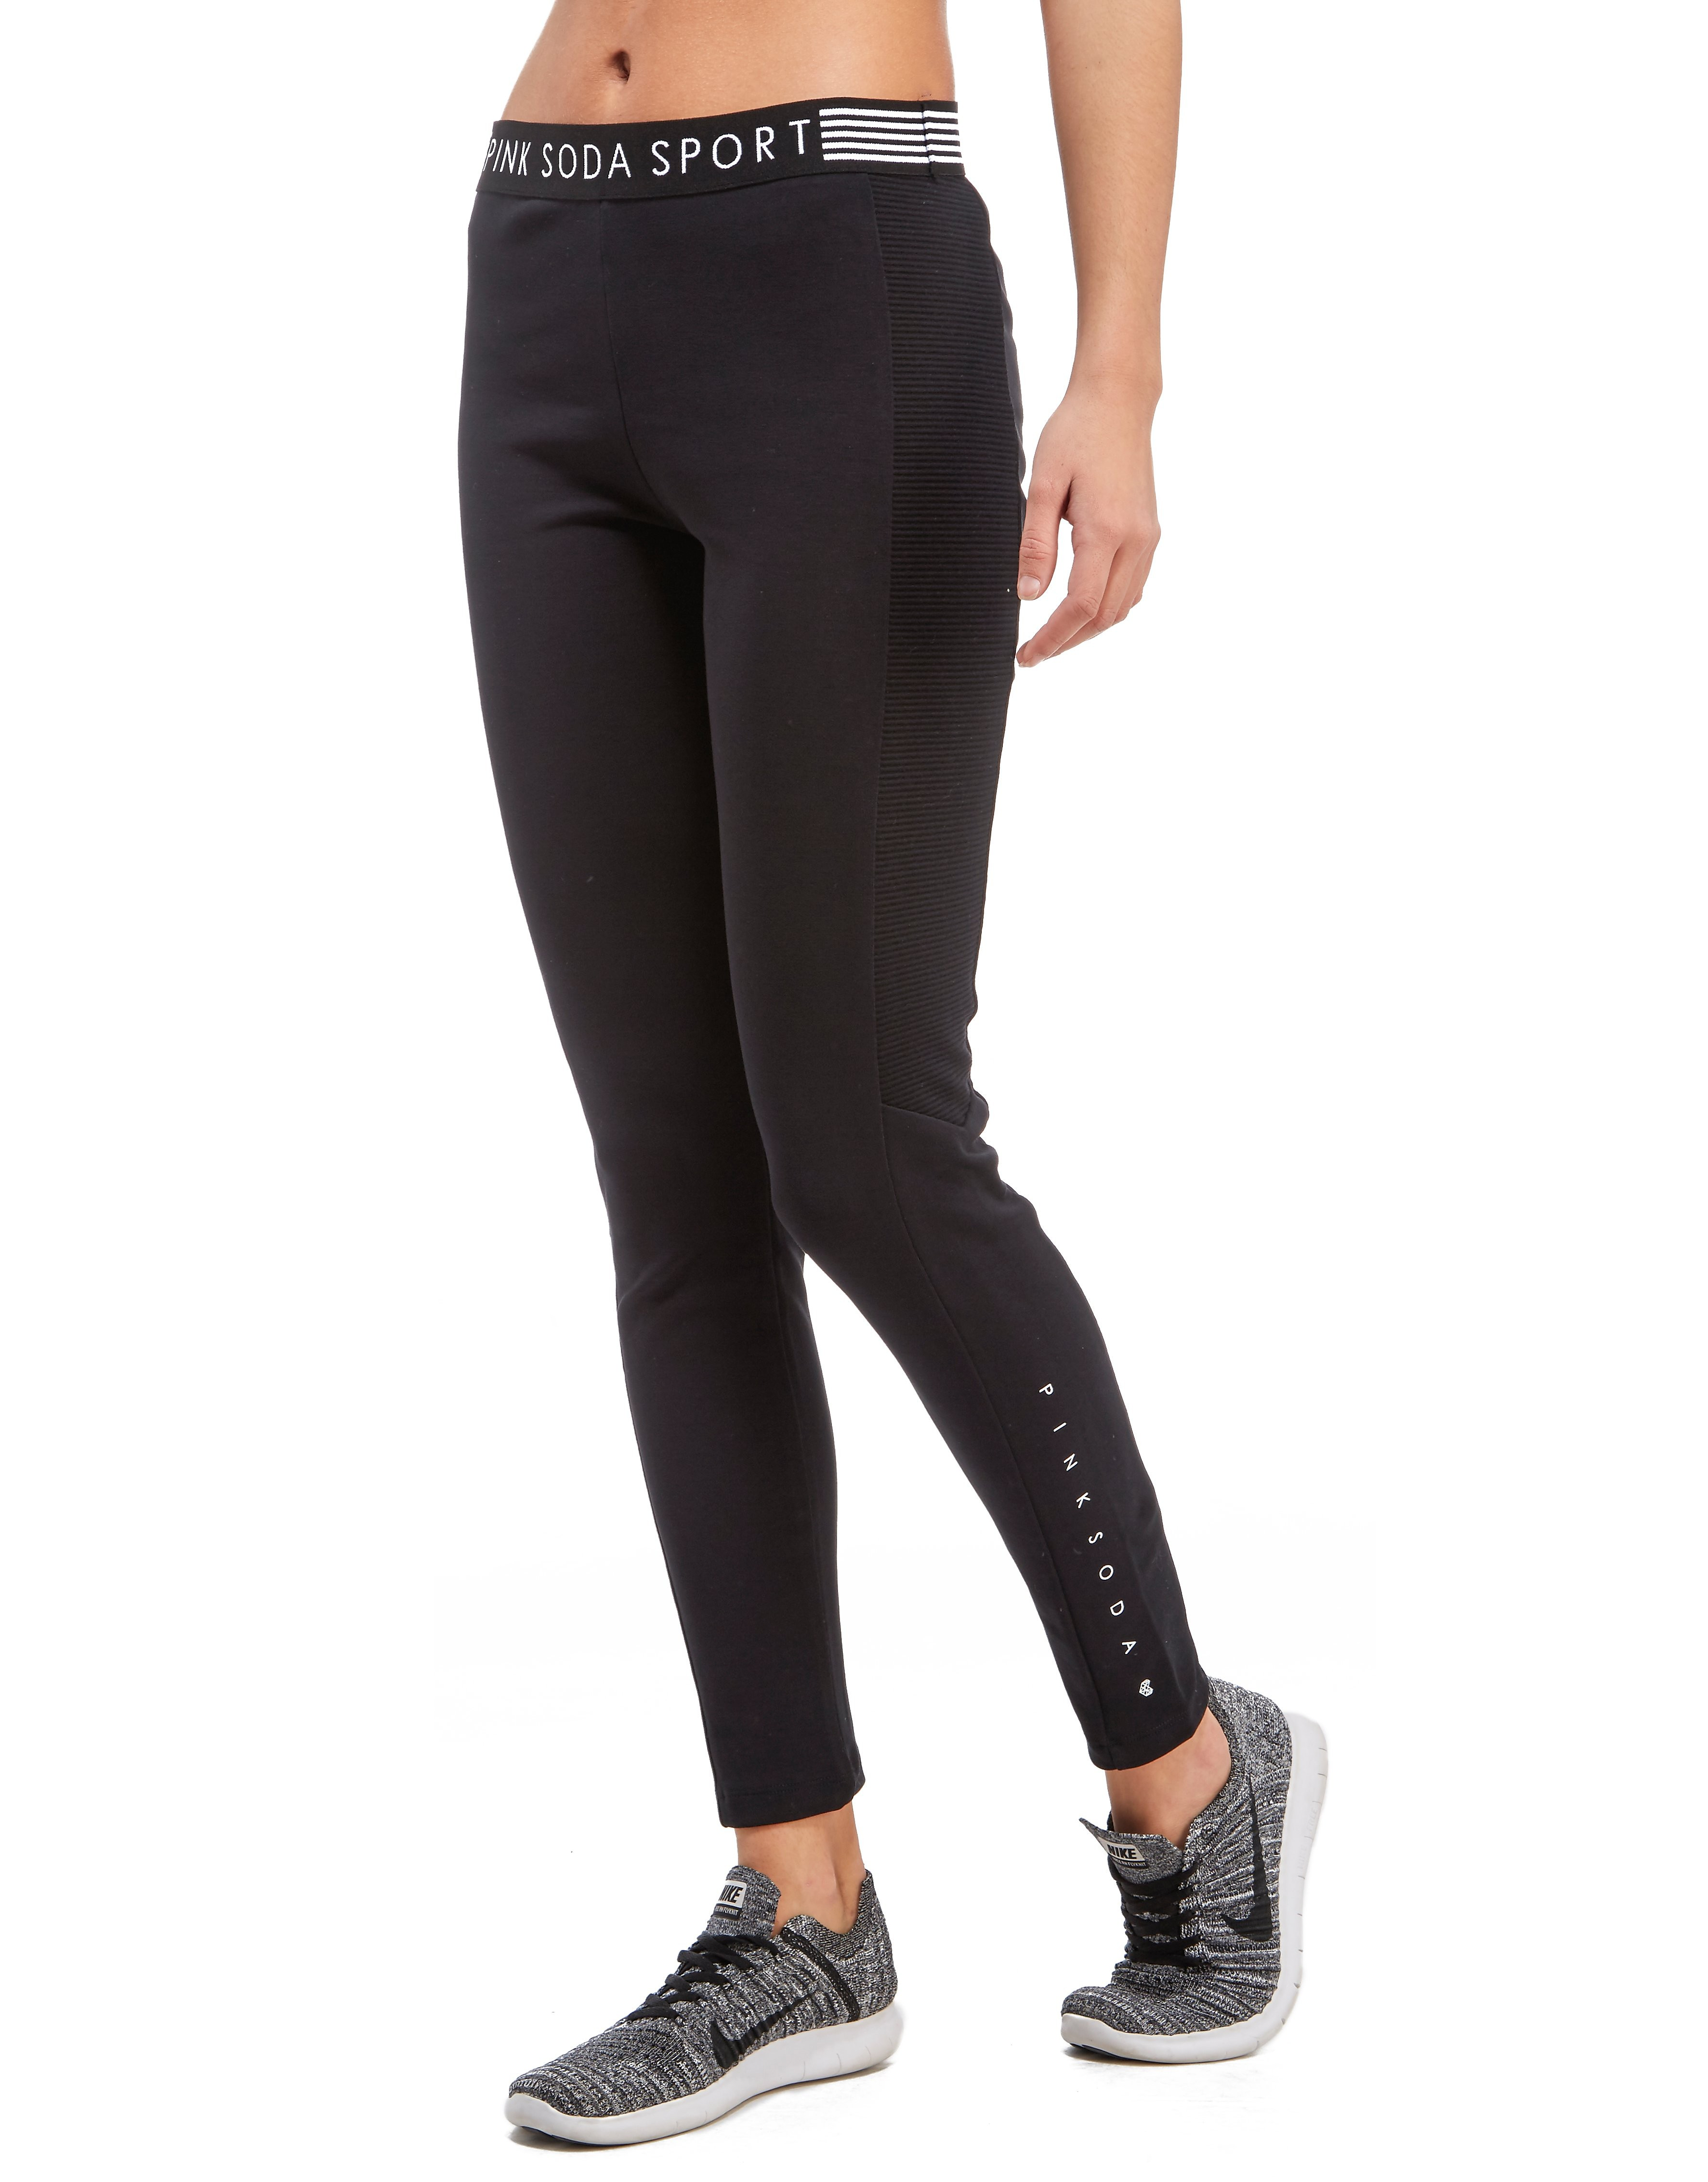 Pink Soda Sport Mesh Lifestyle Leggings